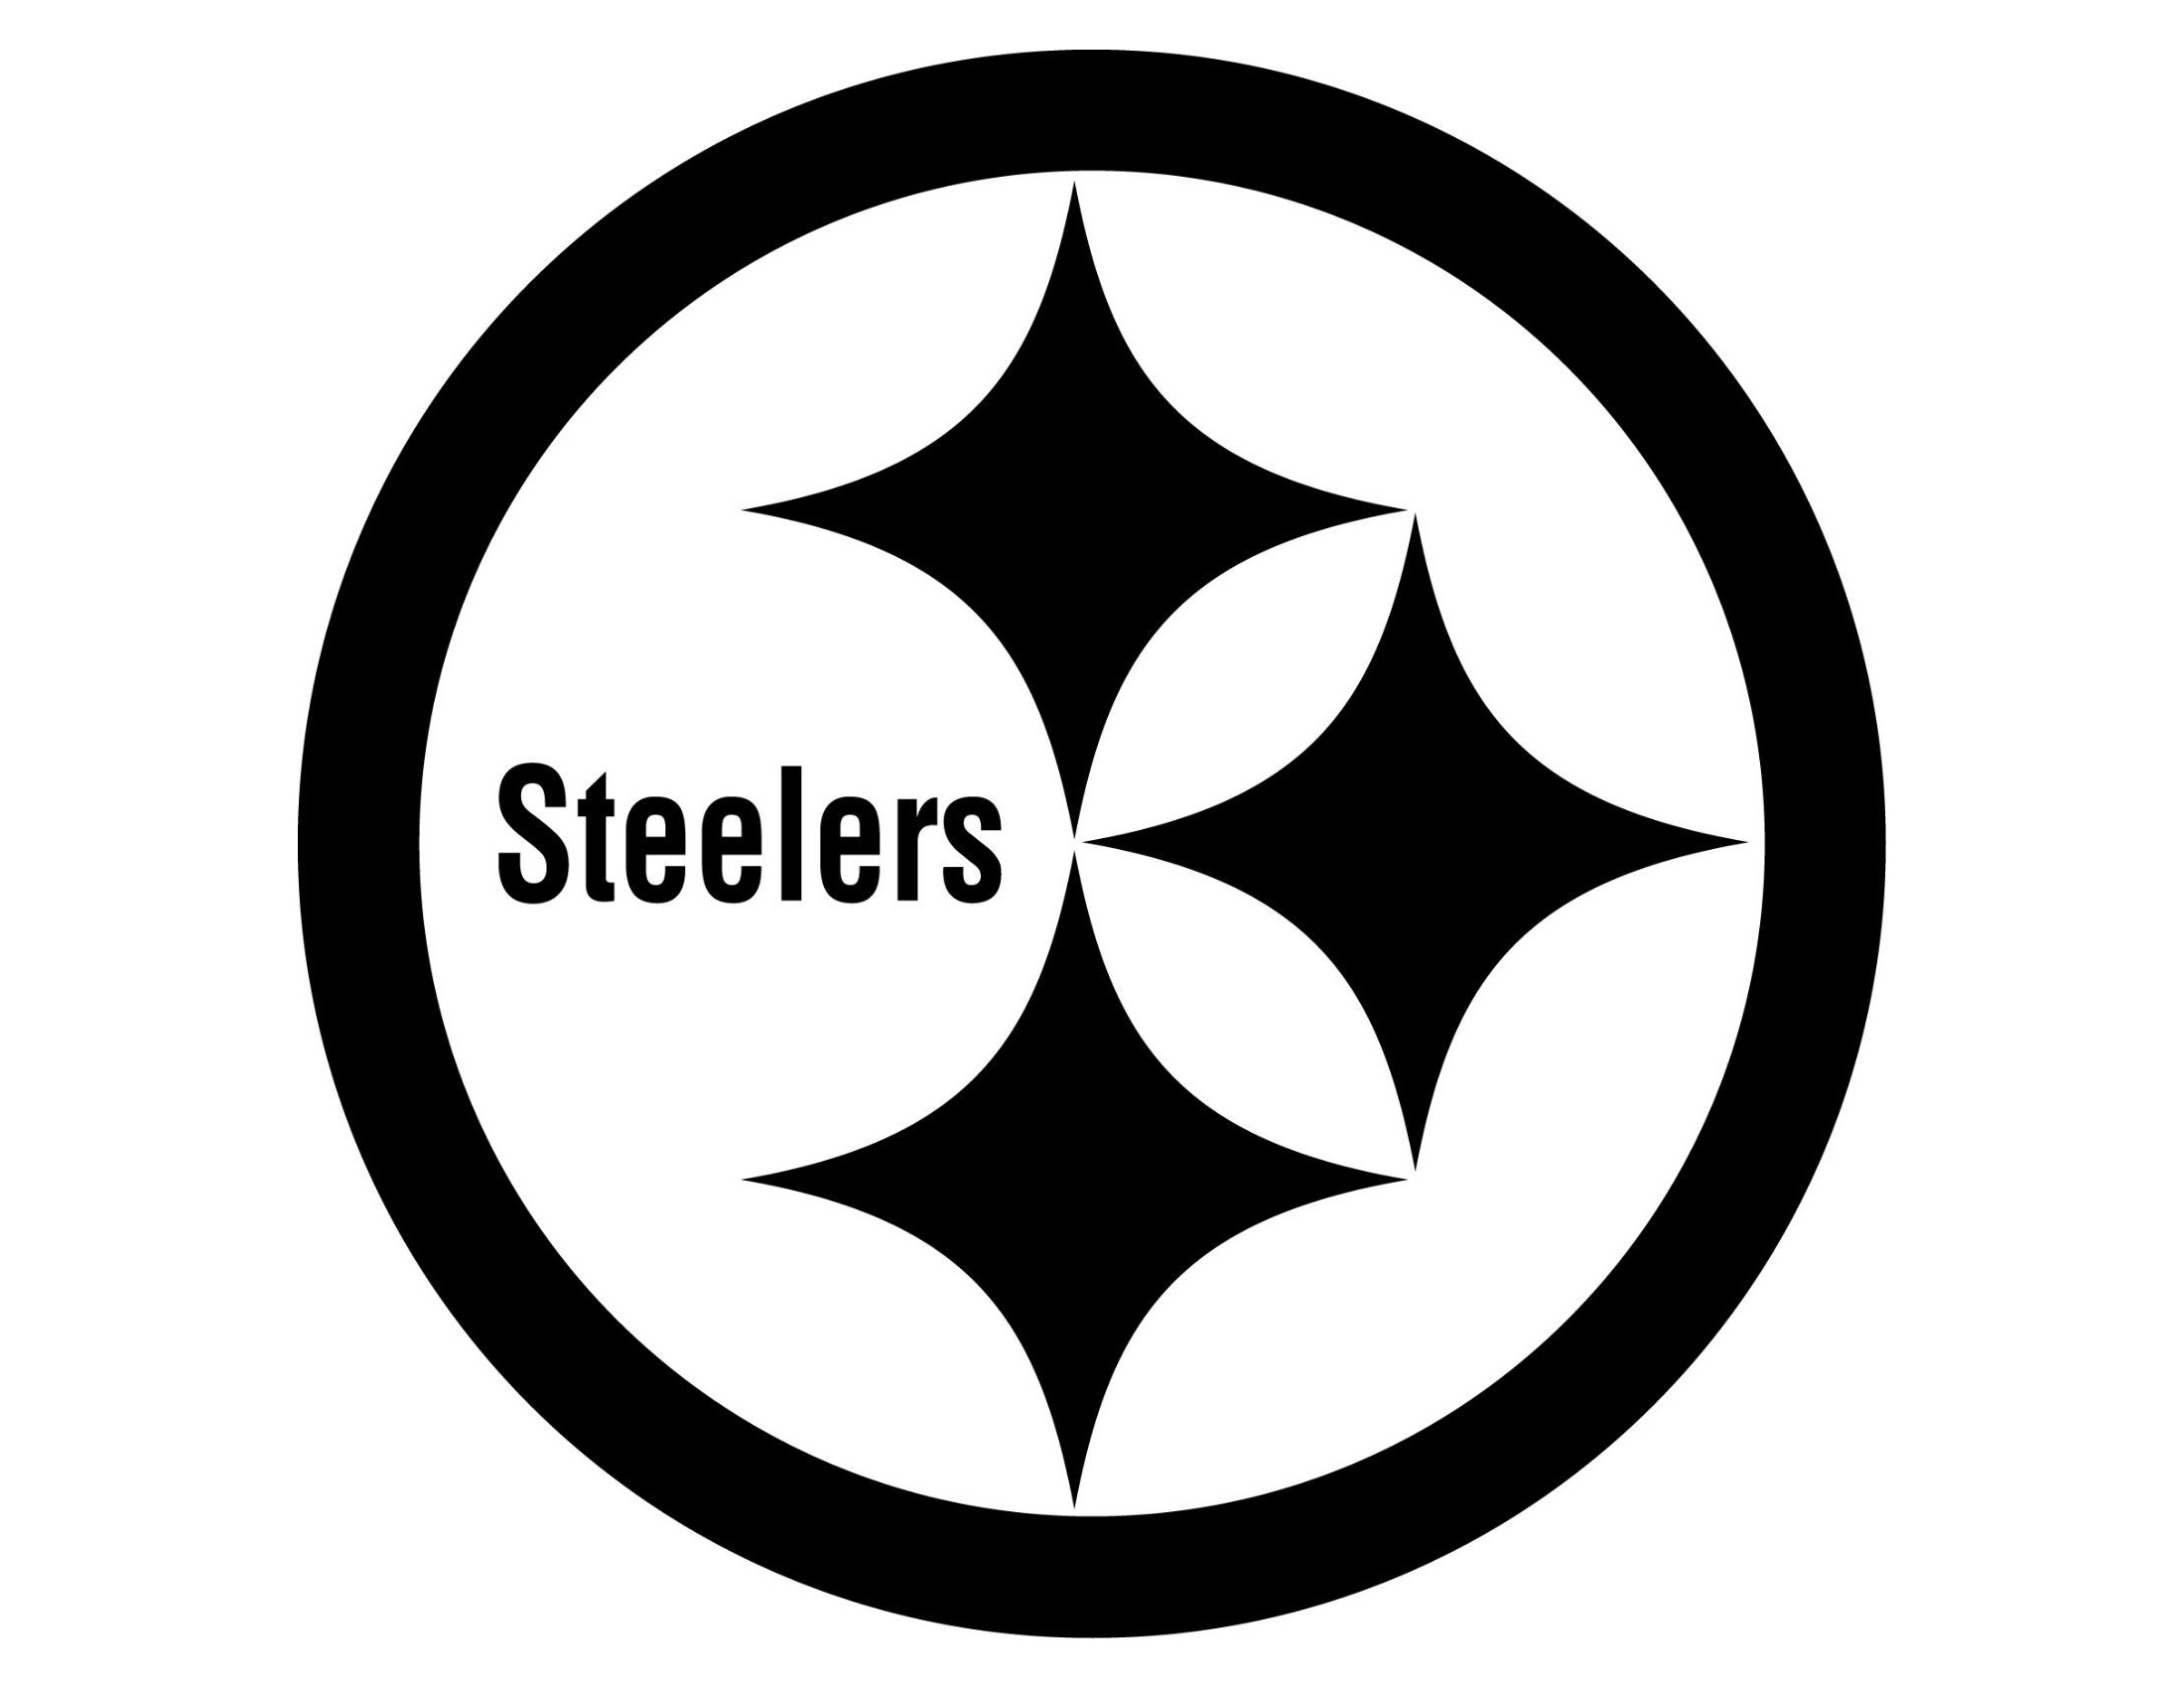 Meaning Pittsburgh Steelers logo and symbol.